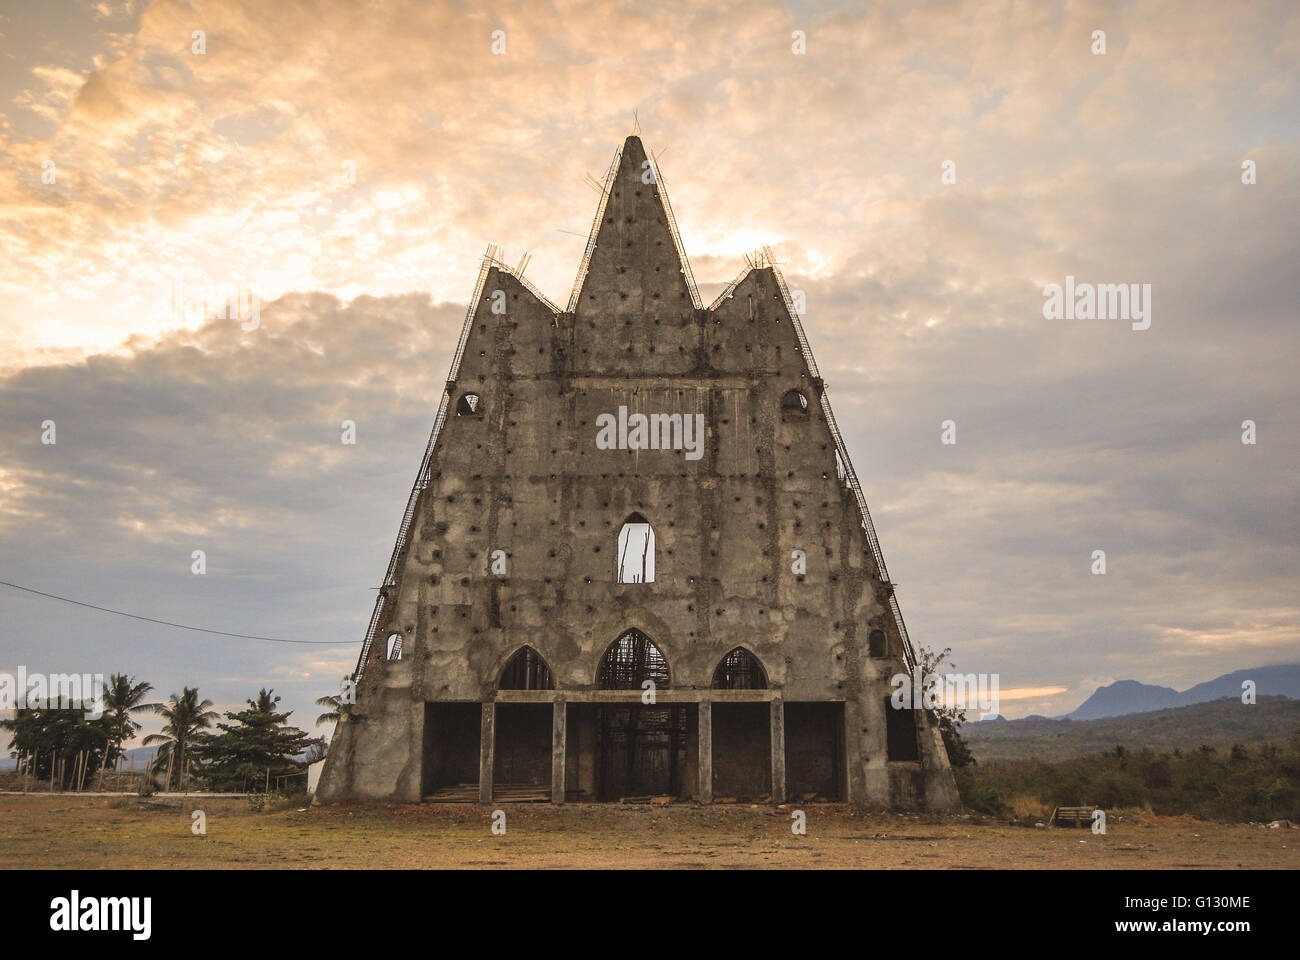 Unfinished and abandoned church in Suai, East Timor - Stock Image